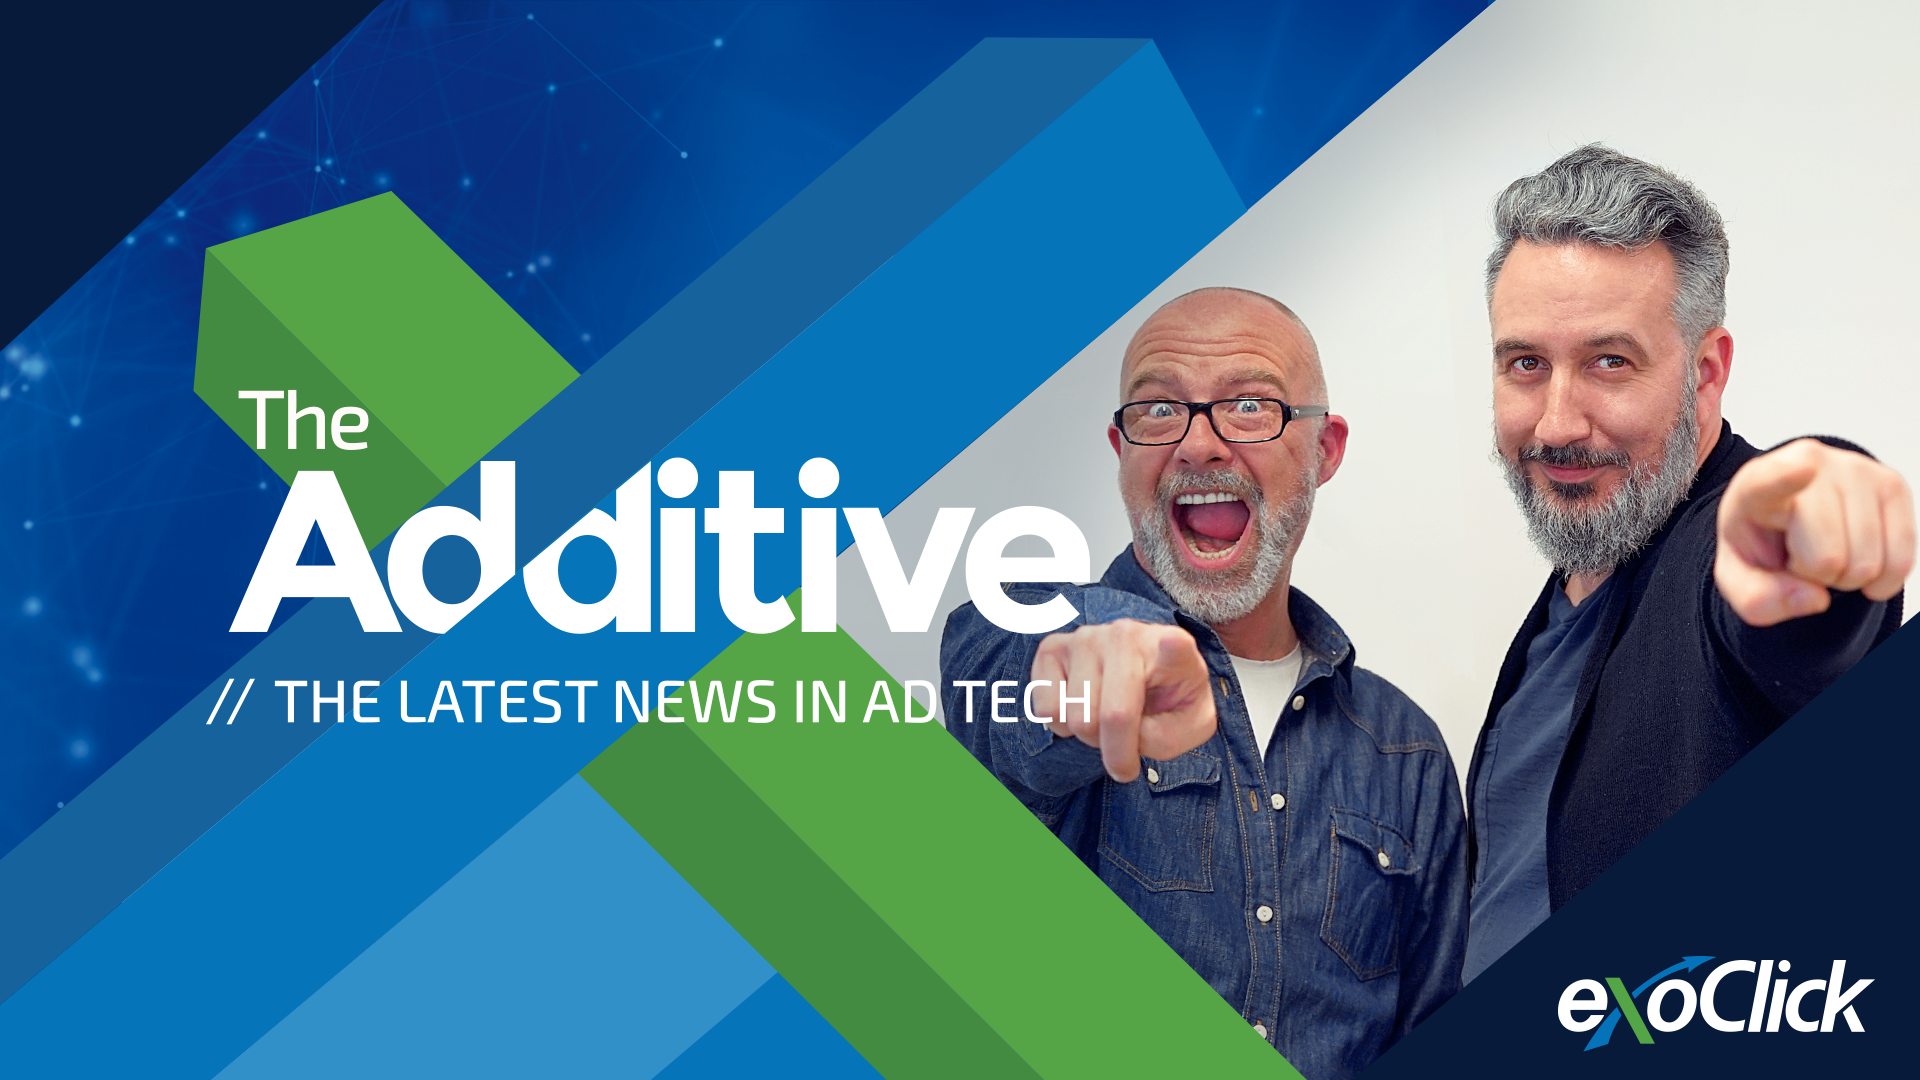 The Additive January 2019